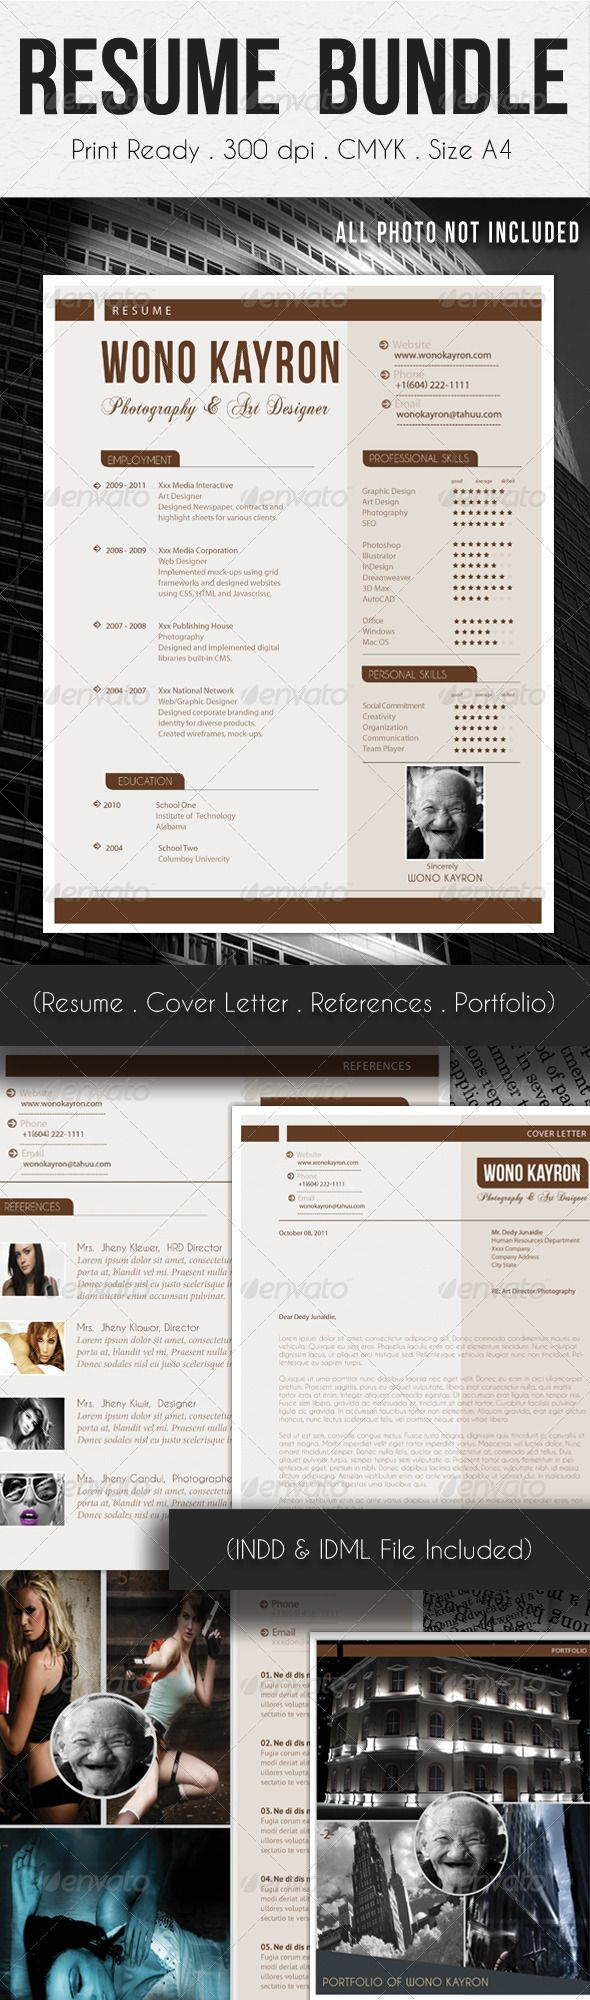 best images about work stuff icebreakers etc on pinterest